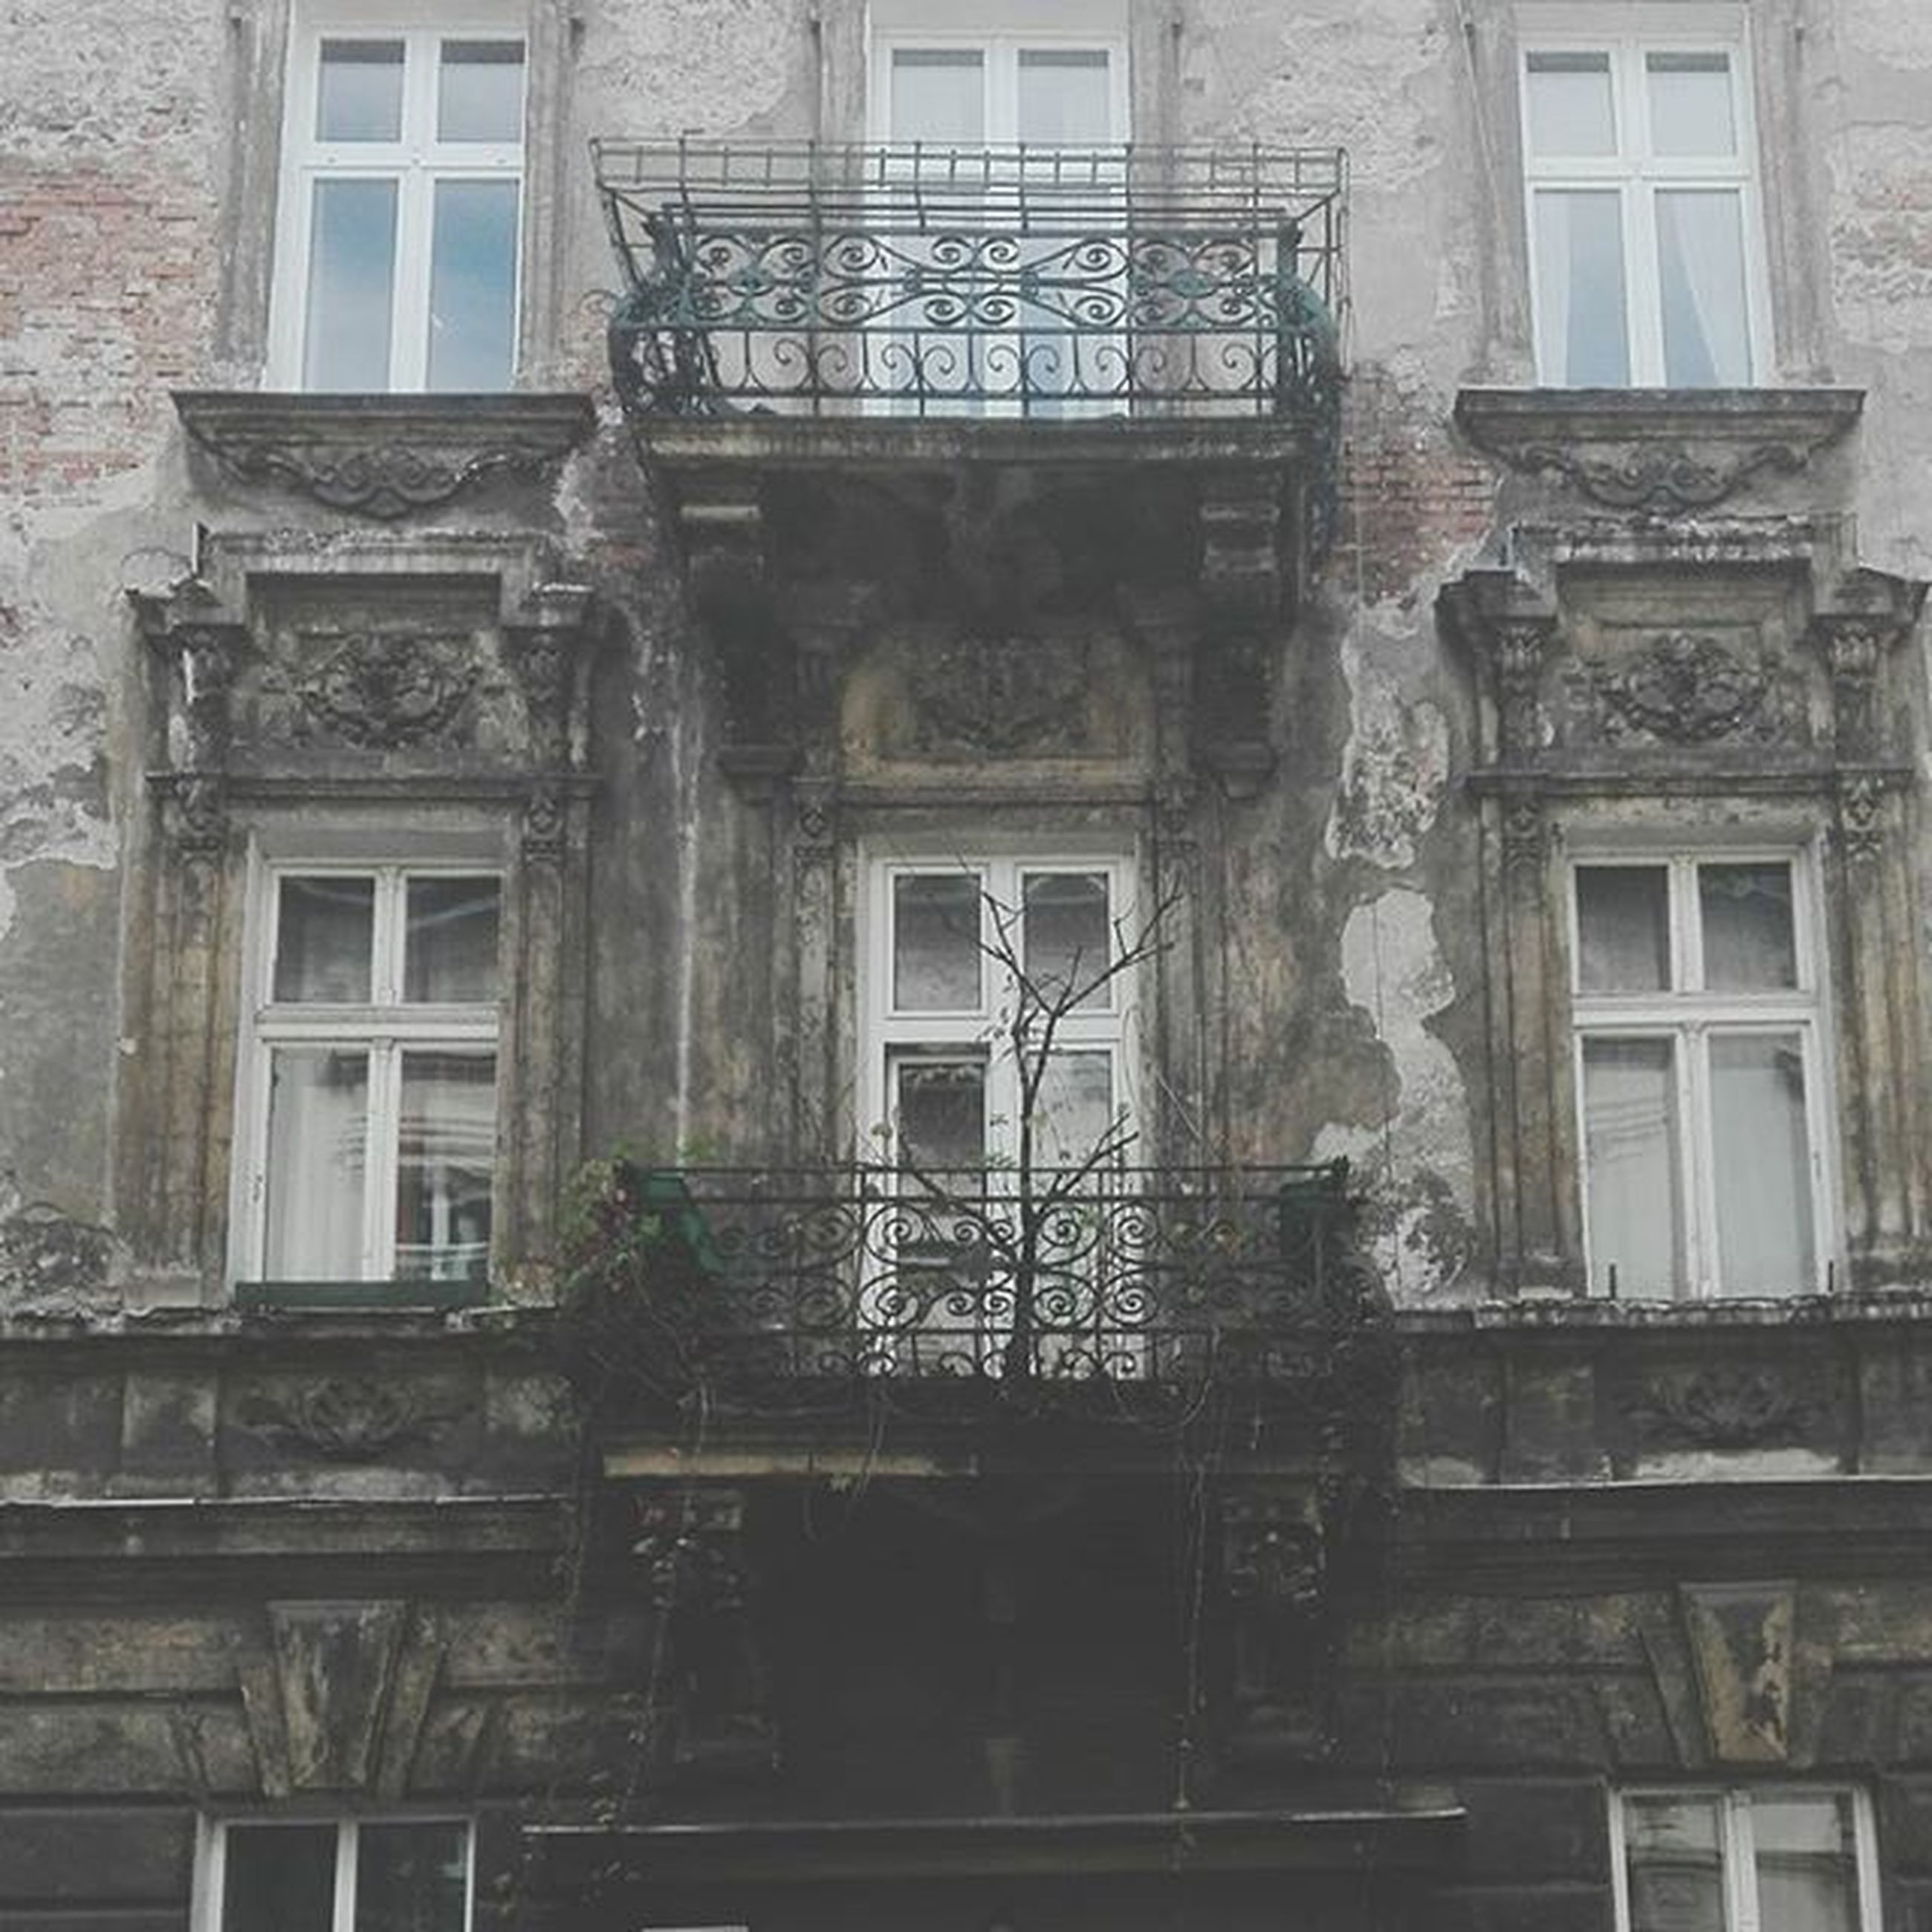 architecture, building exterior, built structure, window, building, residential building, old, residential structure, balcony, low angle view, house, weathered, day, door, facade, outdoors, railing, no people, city, full frame